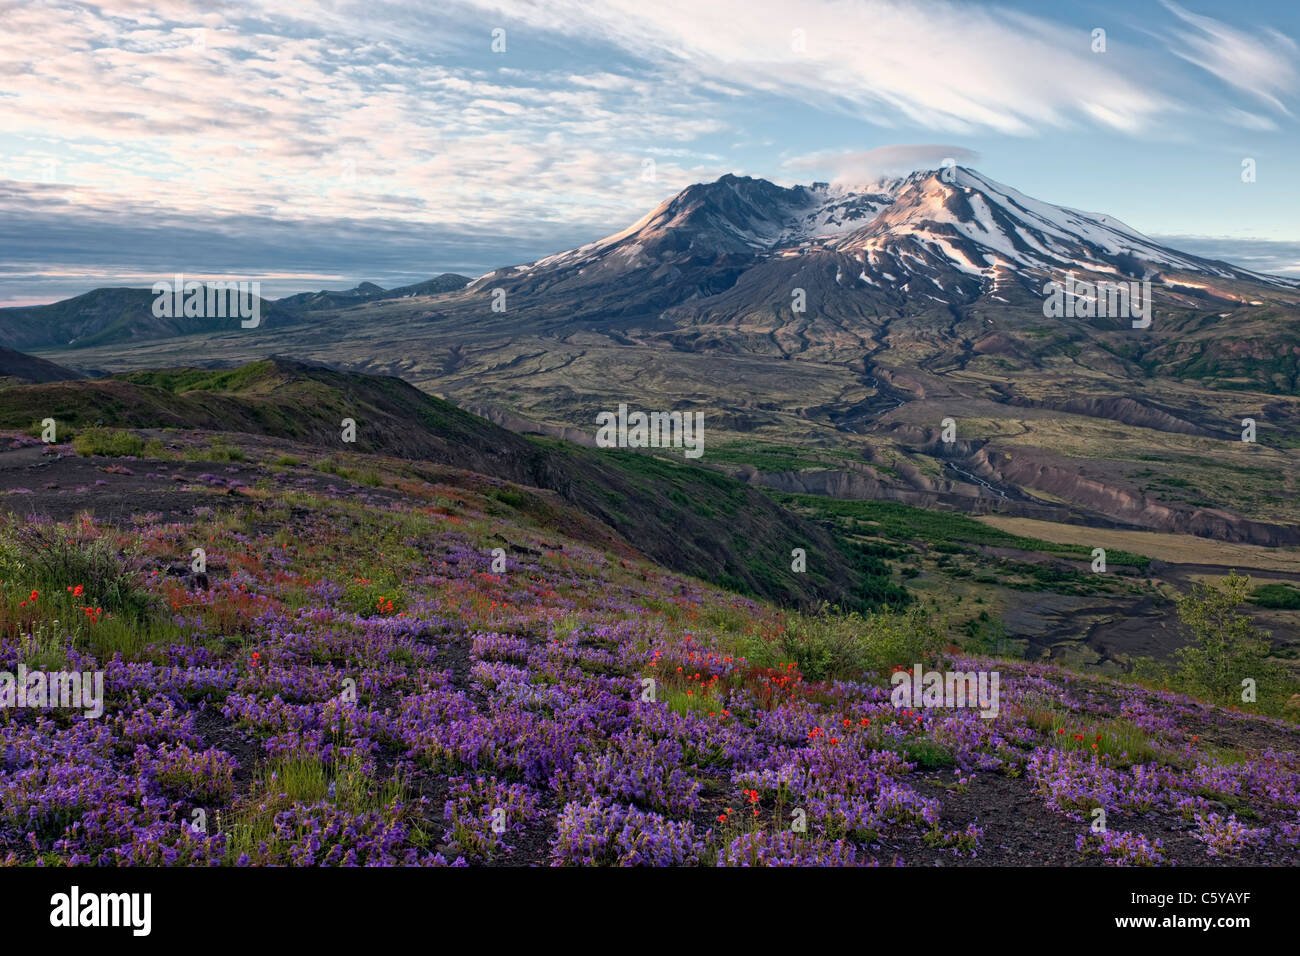 Sunrise over Washington's Mount St Helens National Volcanic Monument and the blooming wildflowers along Johnston - Stock Image